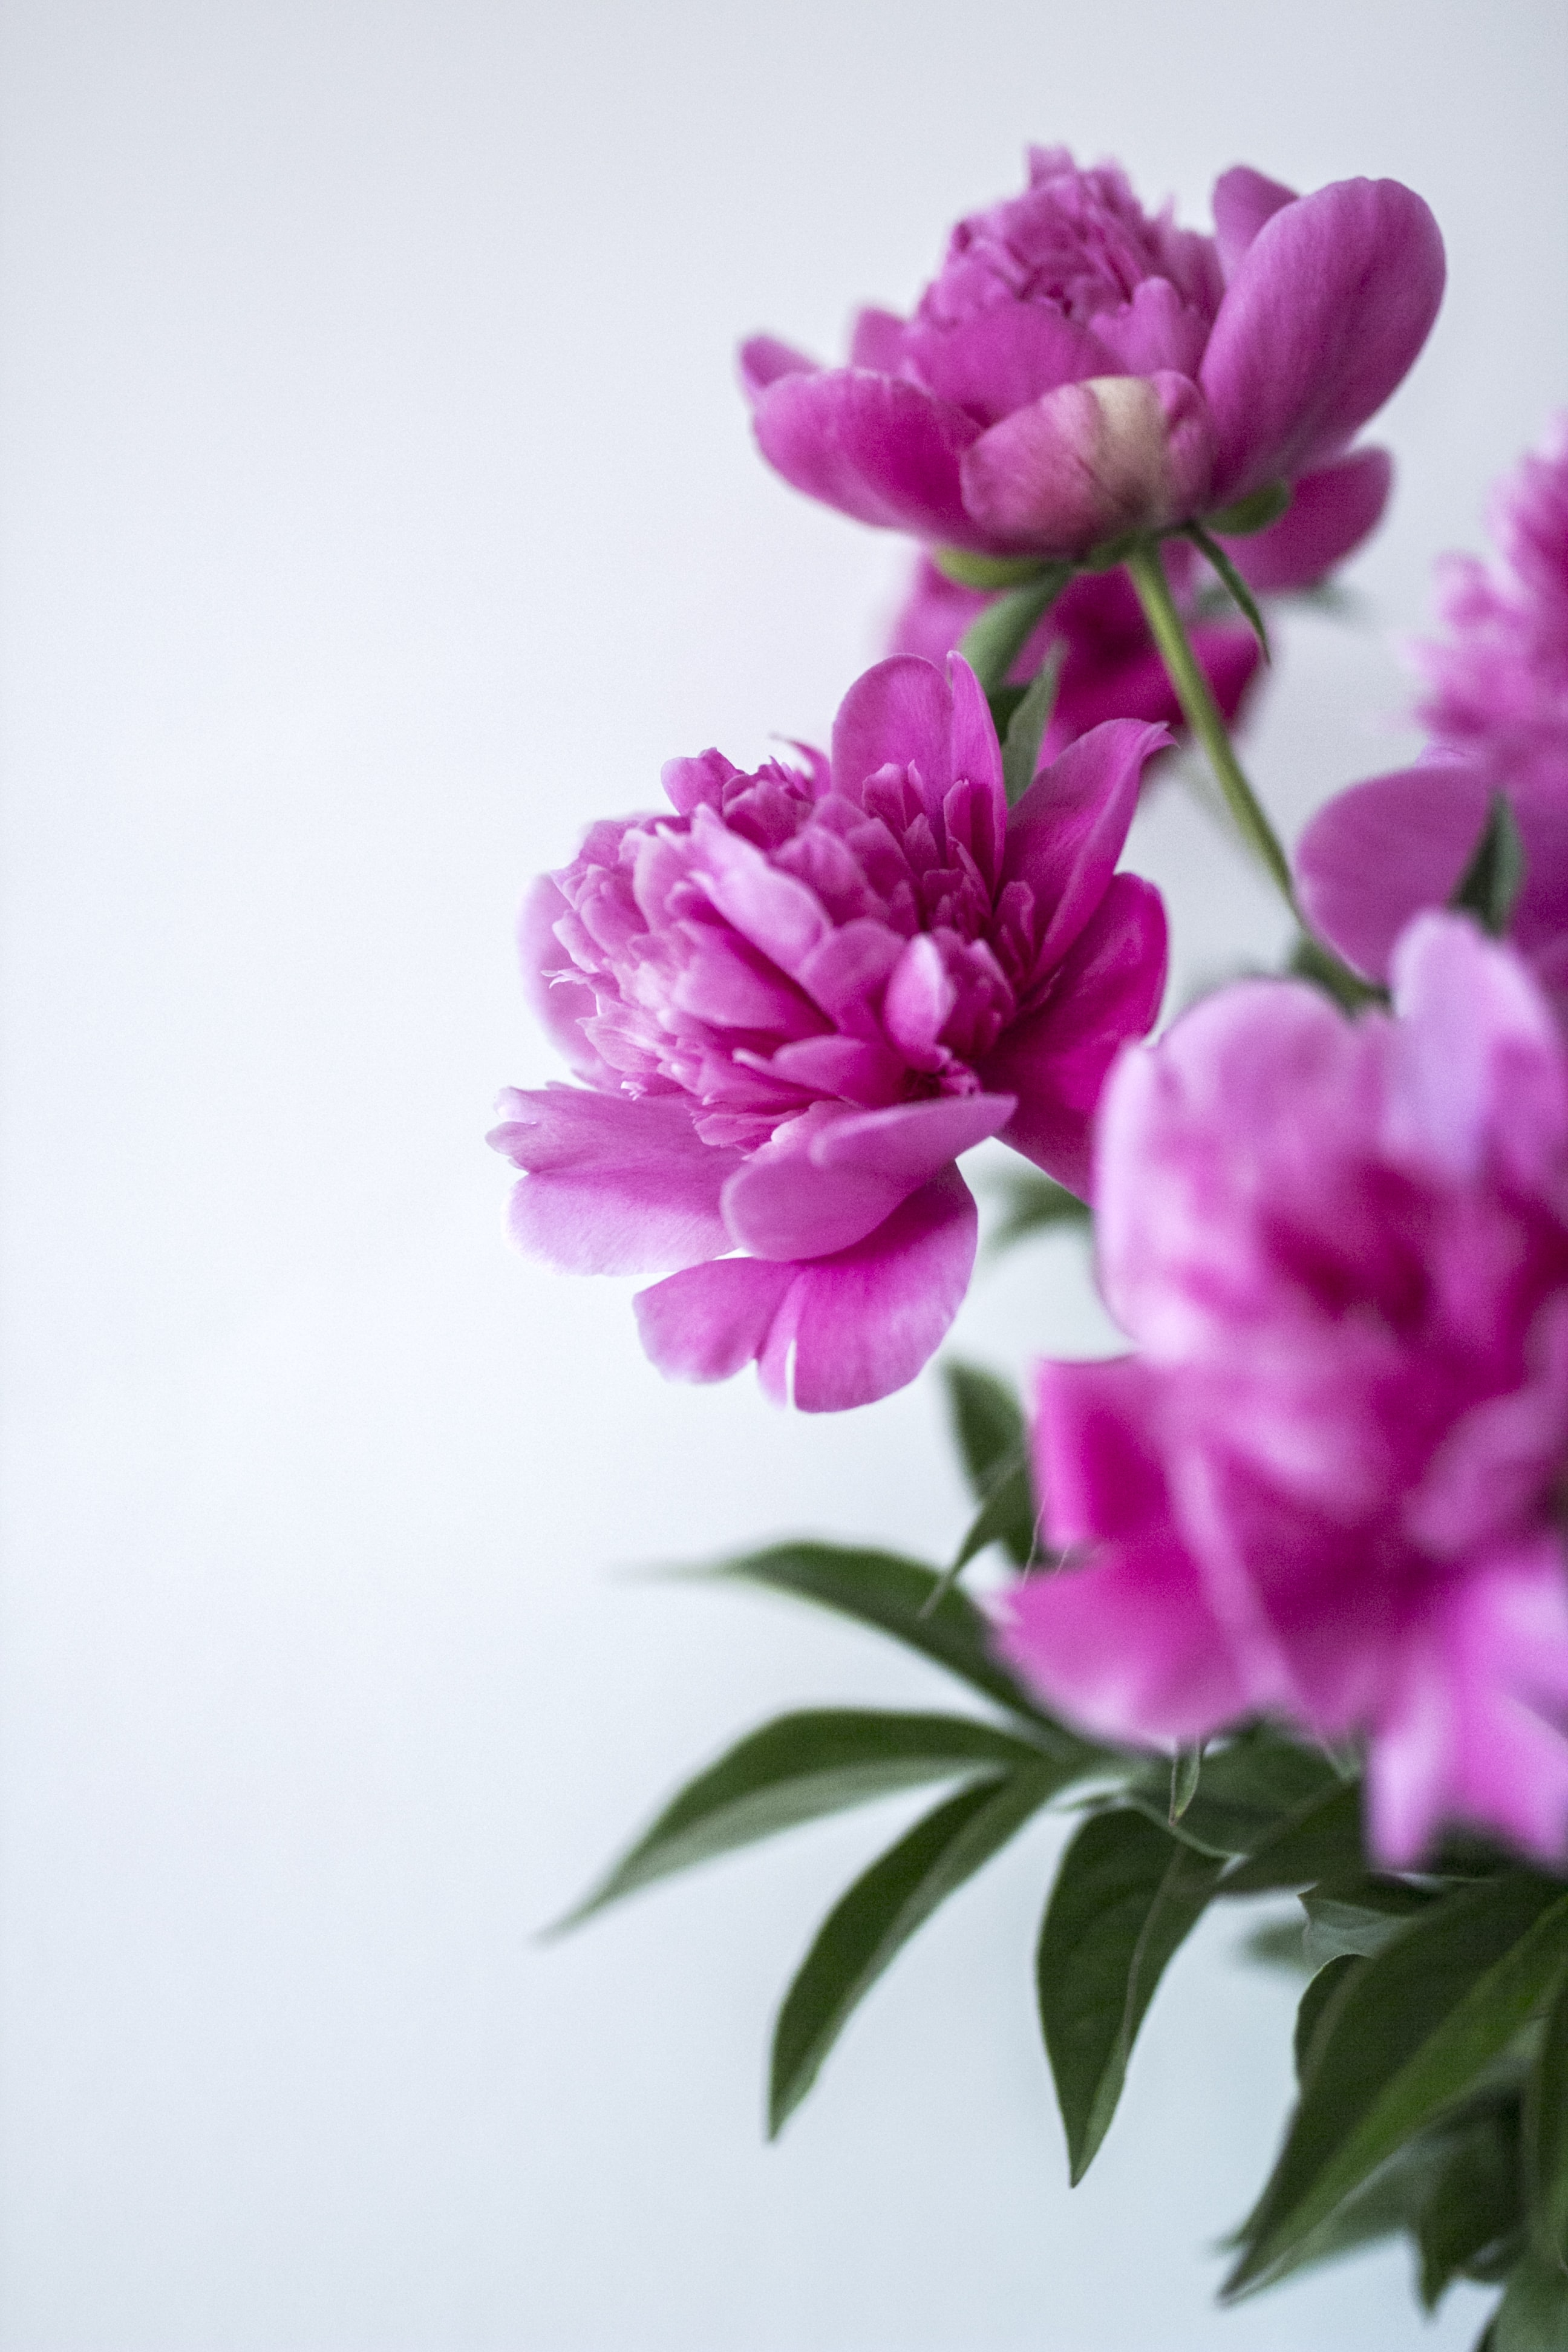 purple petaled flowers against white background